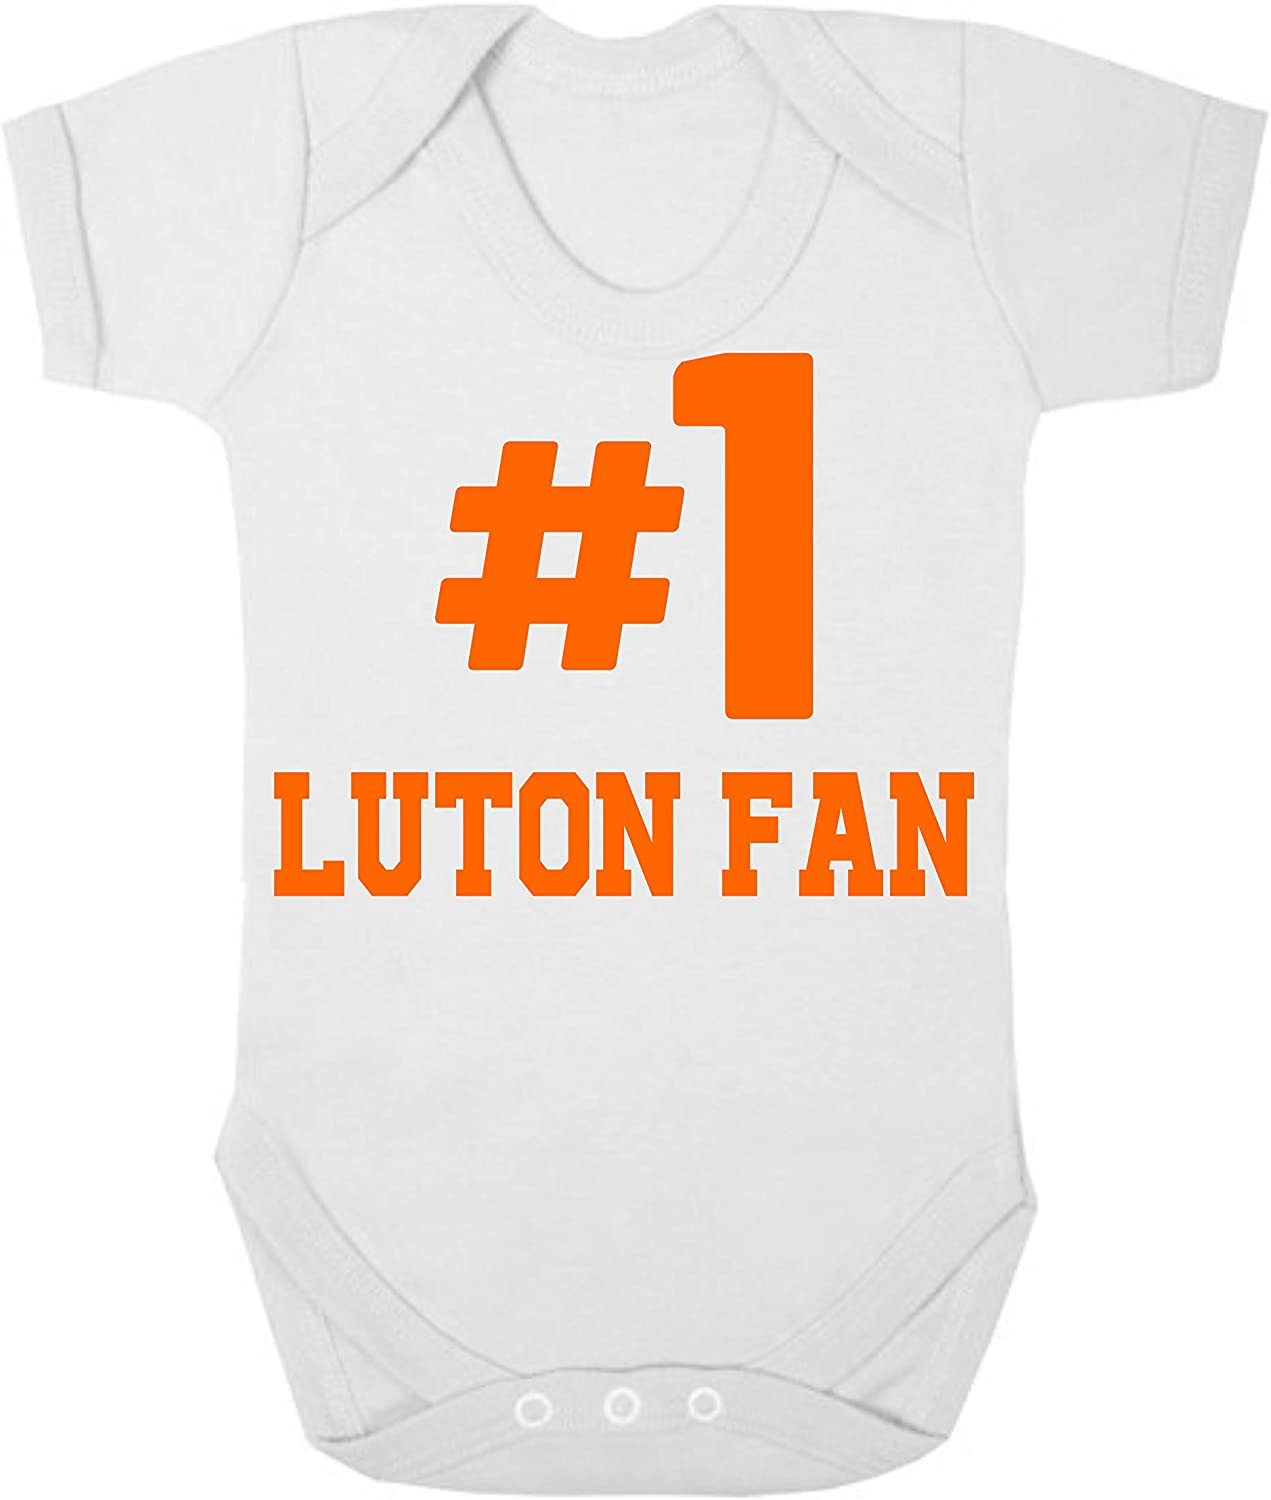 Luton Town Hashtag #1 Number One Football Fan Baby Grow Vest Boy Girl Gift Short Sleeve Baby Grow Romper